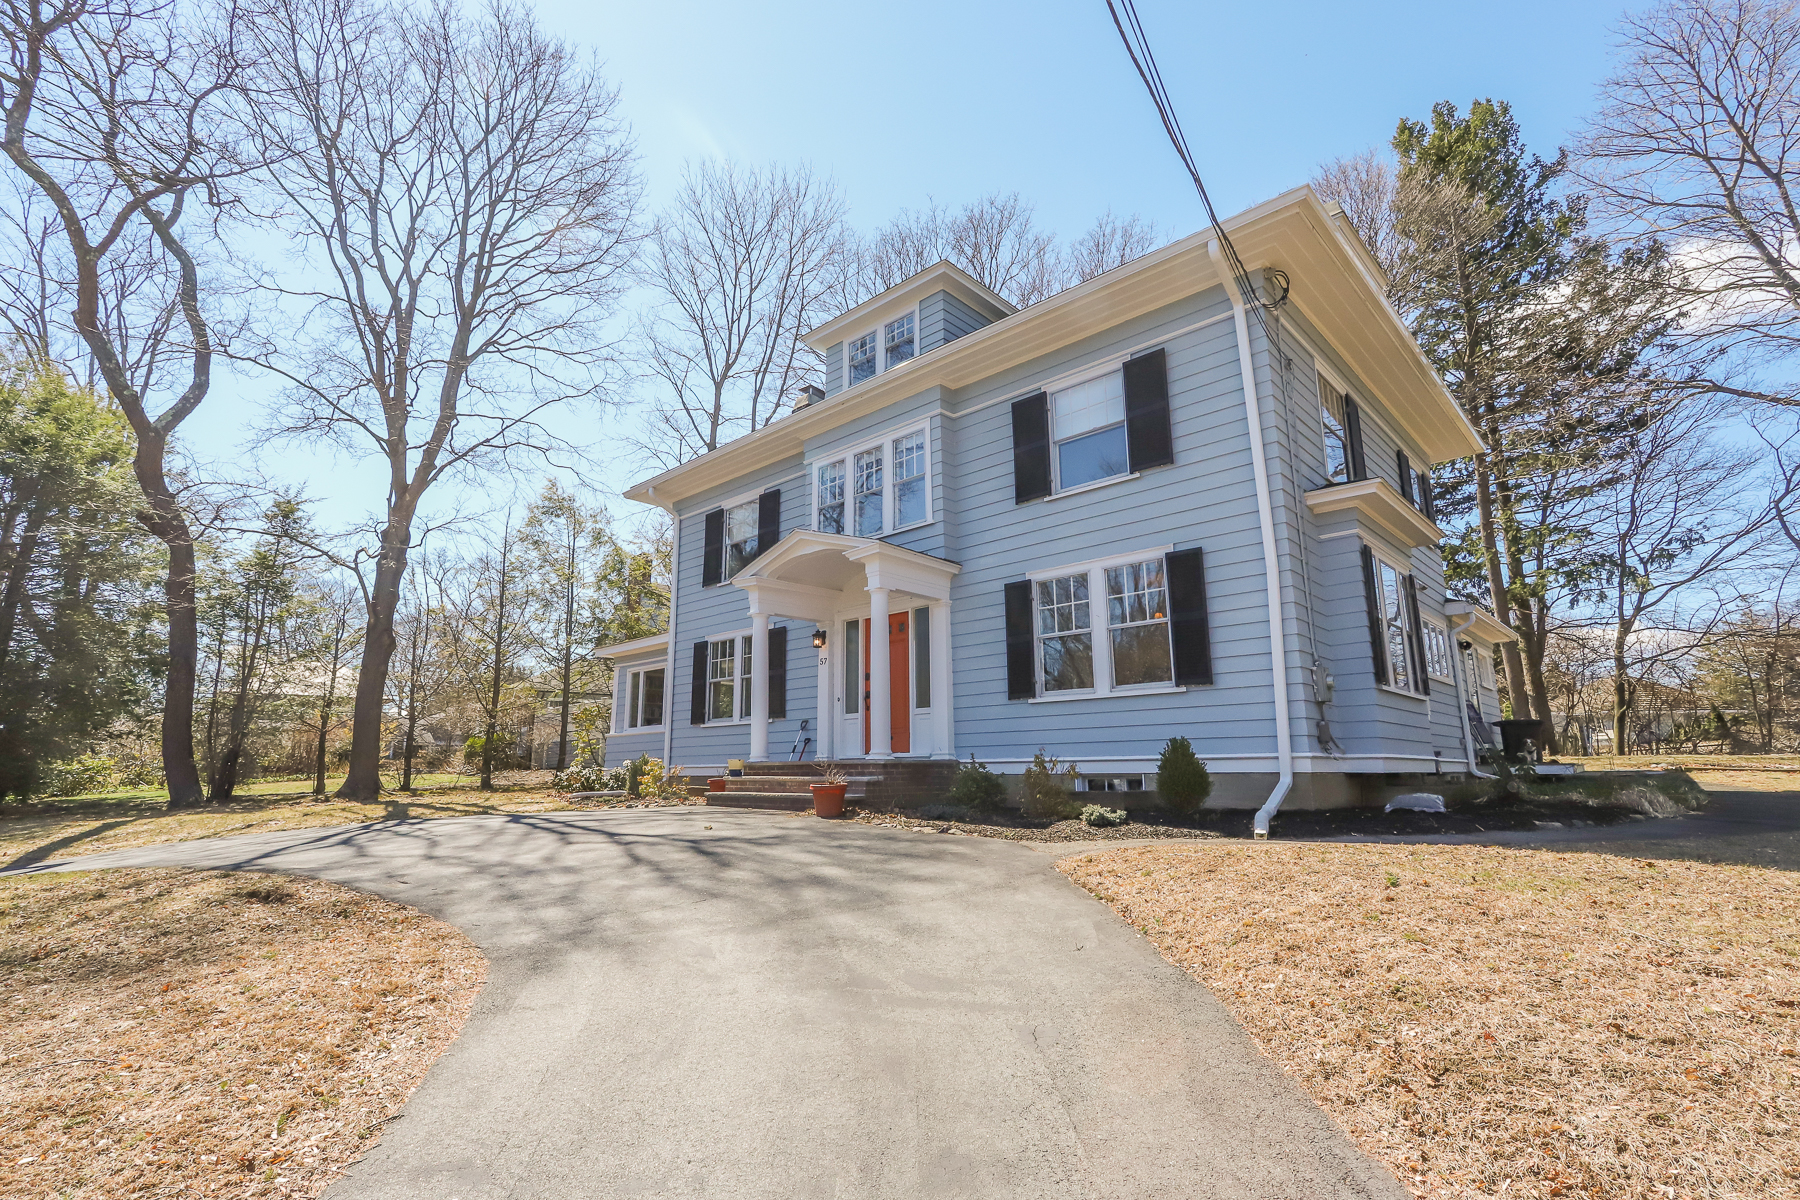 Single Family Home for Active at Welcoming center hall colonial 57 Bradlee Avenue Swampscott, Massachusetts 01907 United States